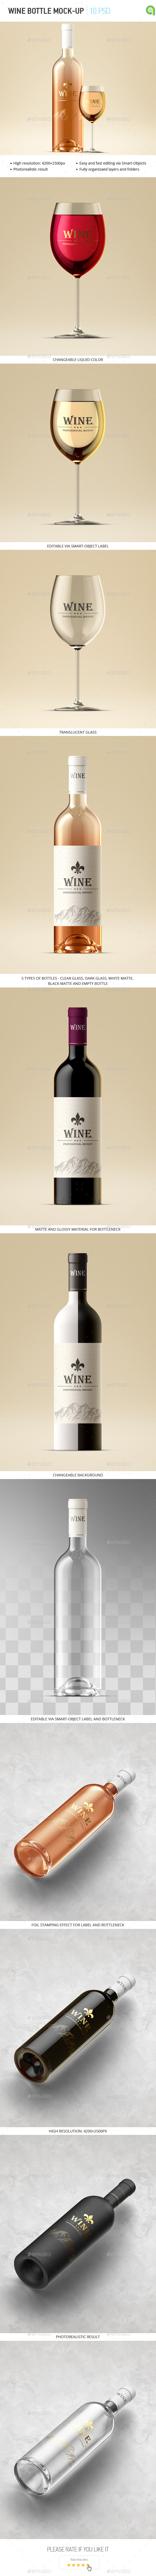 Wine Bottle and Glass Mock-up - Food and Drink Packaging